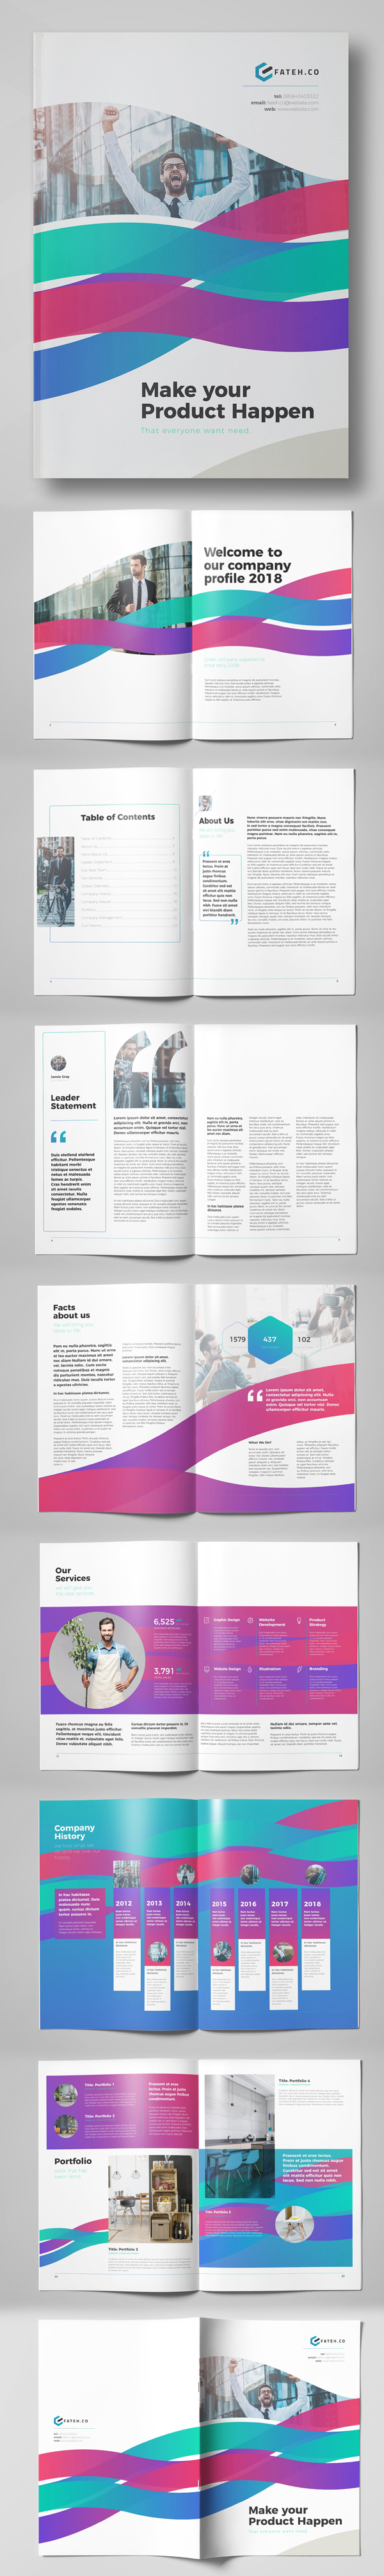 100 Professional Corporate Brochure Templates - 40